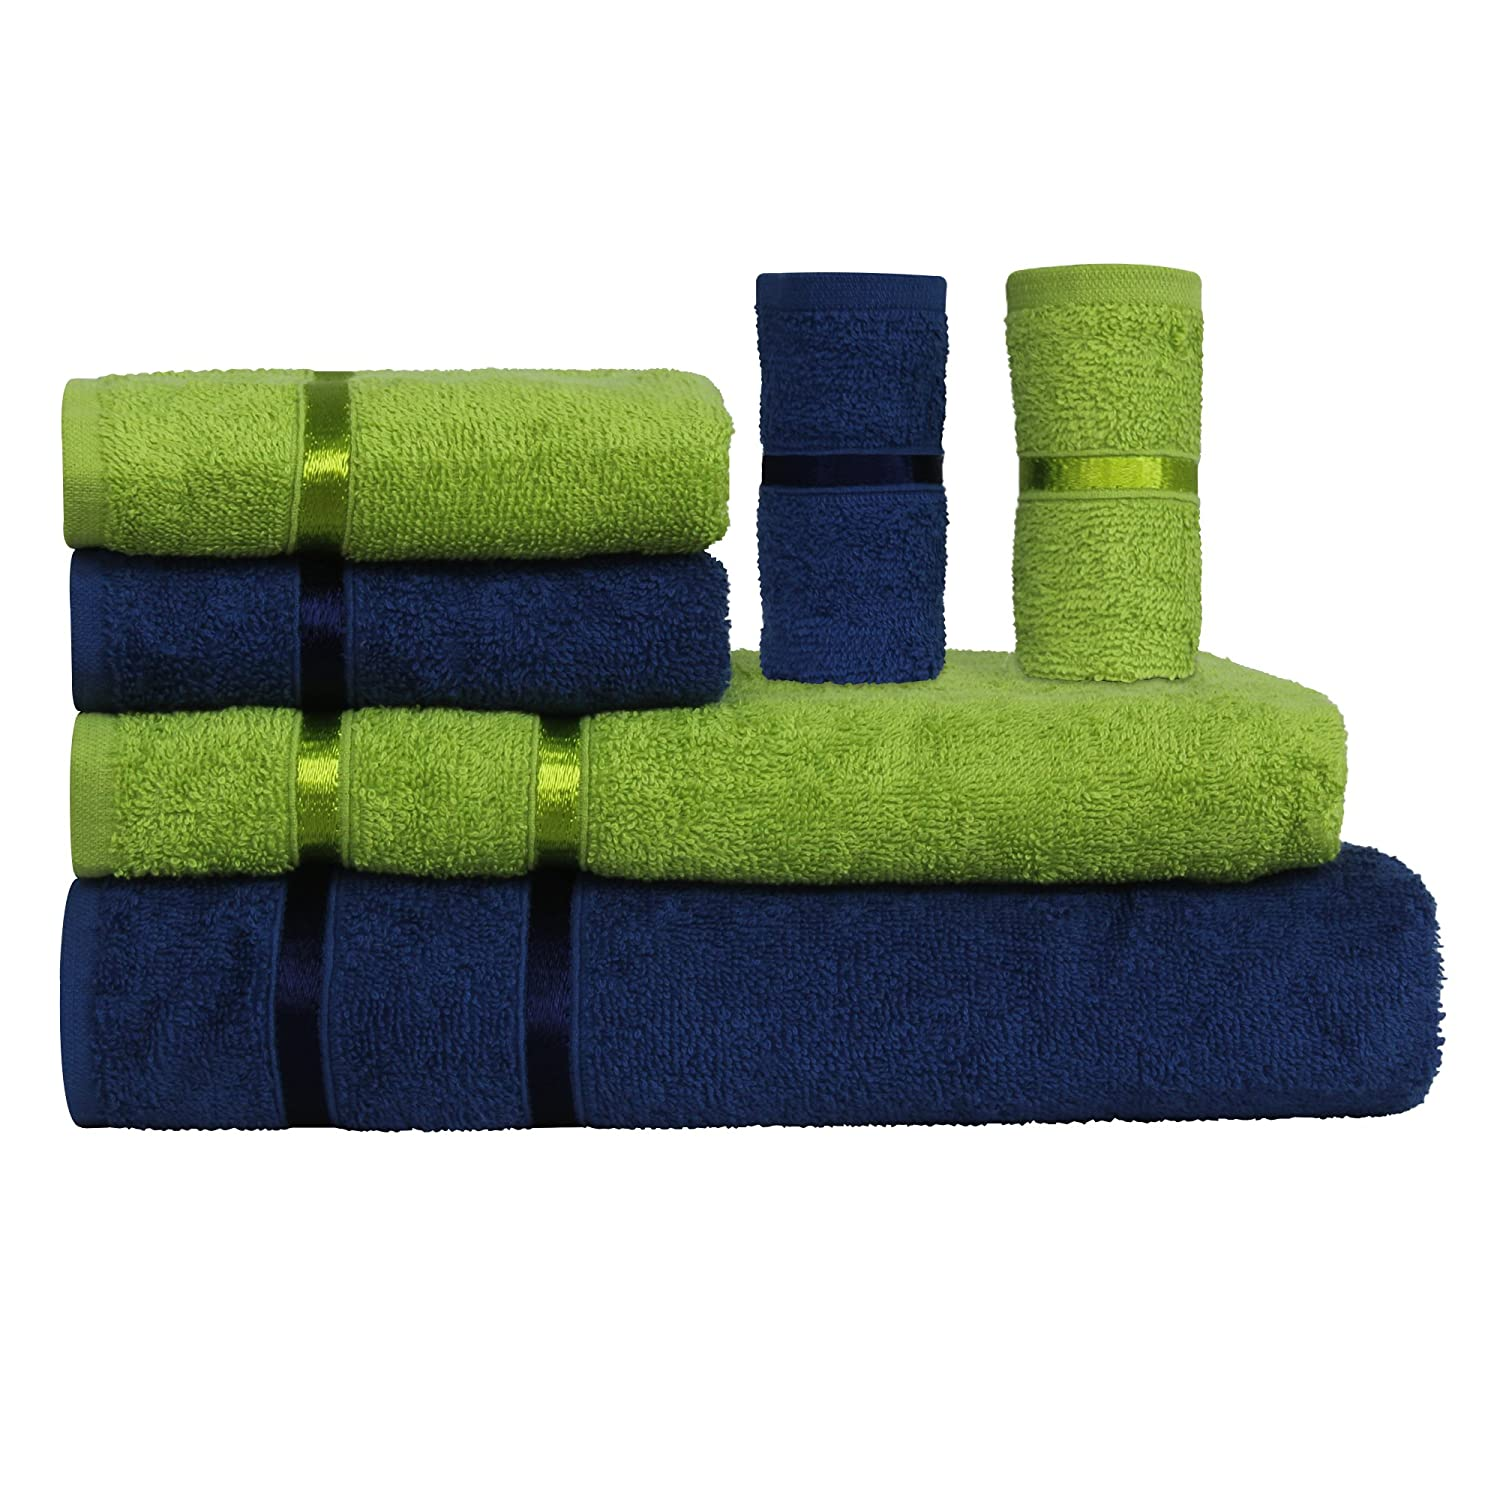 Story@Home 6 Pieces 450 GSM Cotton Towel Set for Couples -